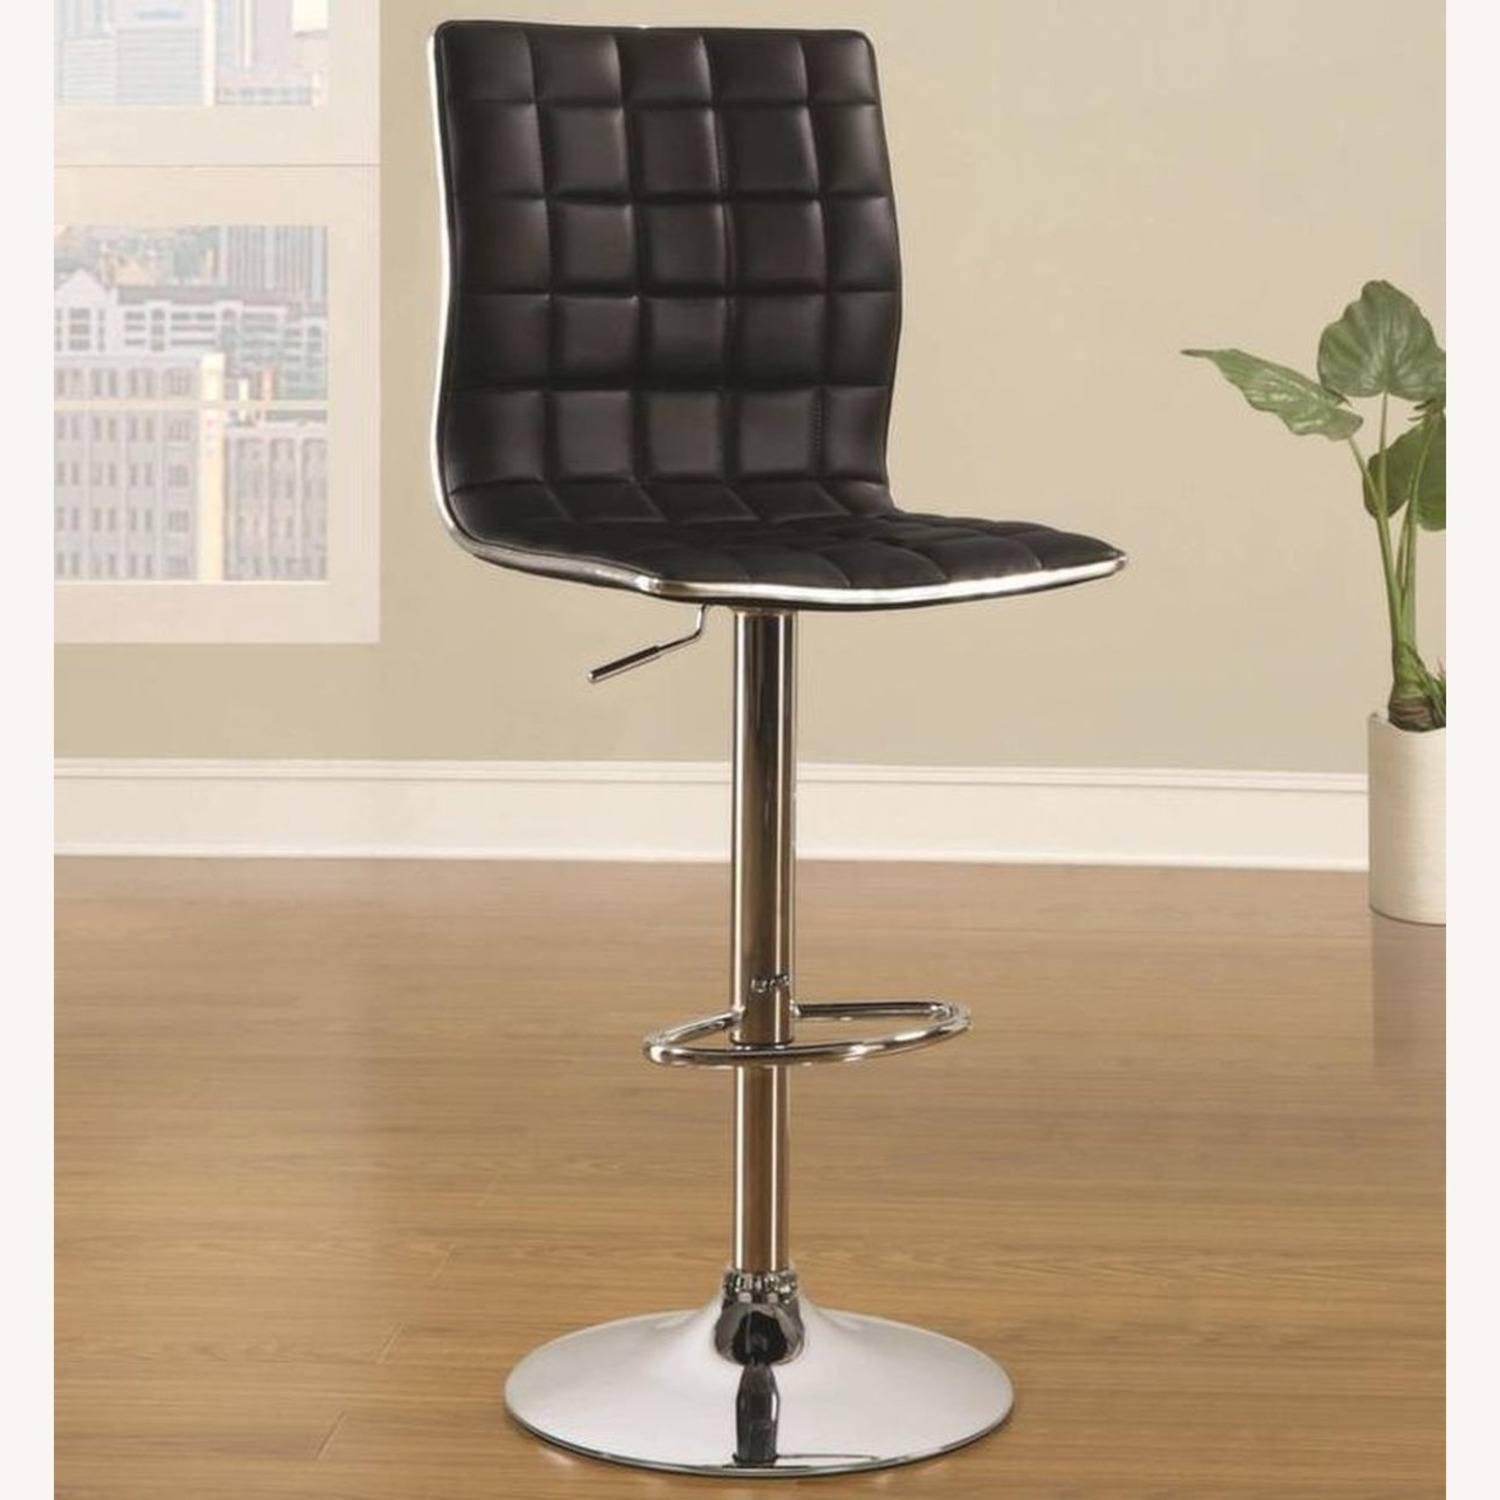 Bar Stool In Black Faux Leather W/ Adjustable Base - image-3